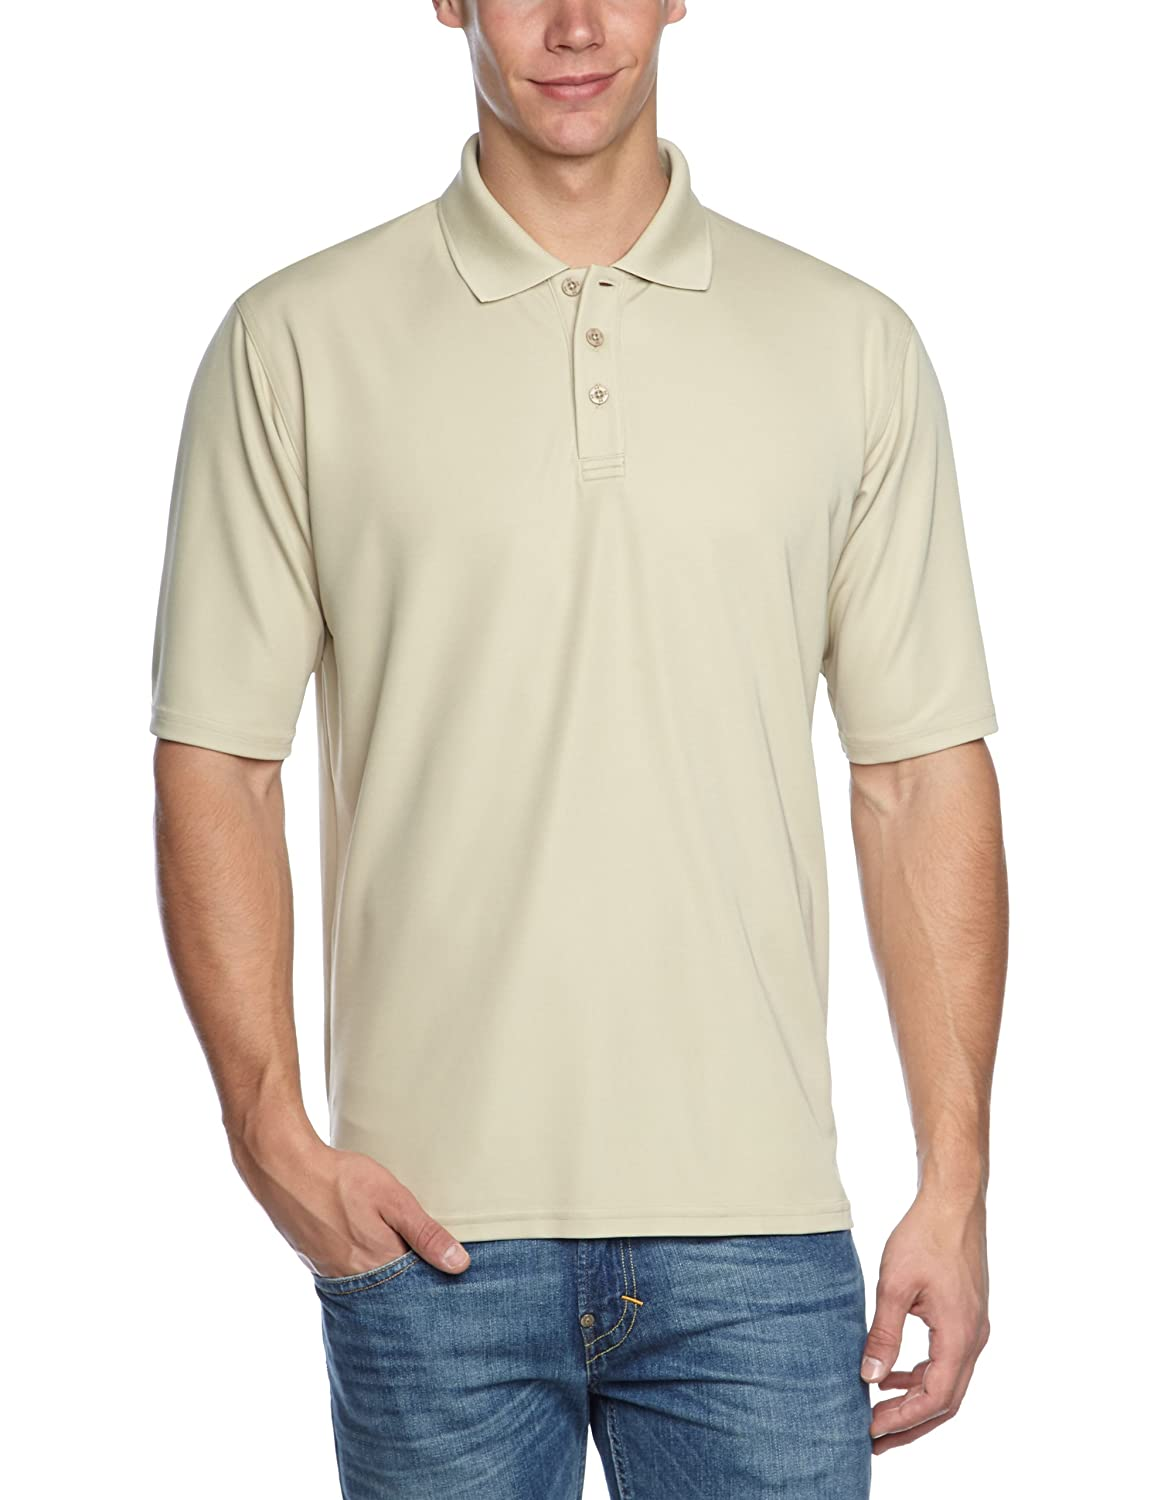 Under Armour - Polo, Color Beige, Talla M, UA1005492B: Amazon.es ...